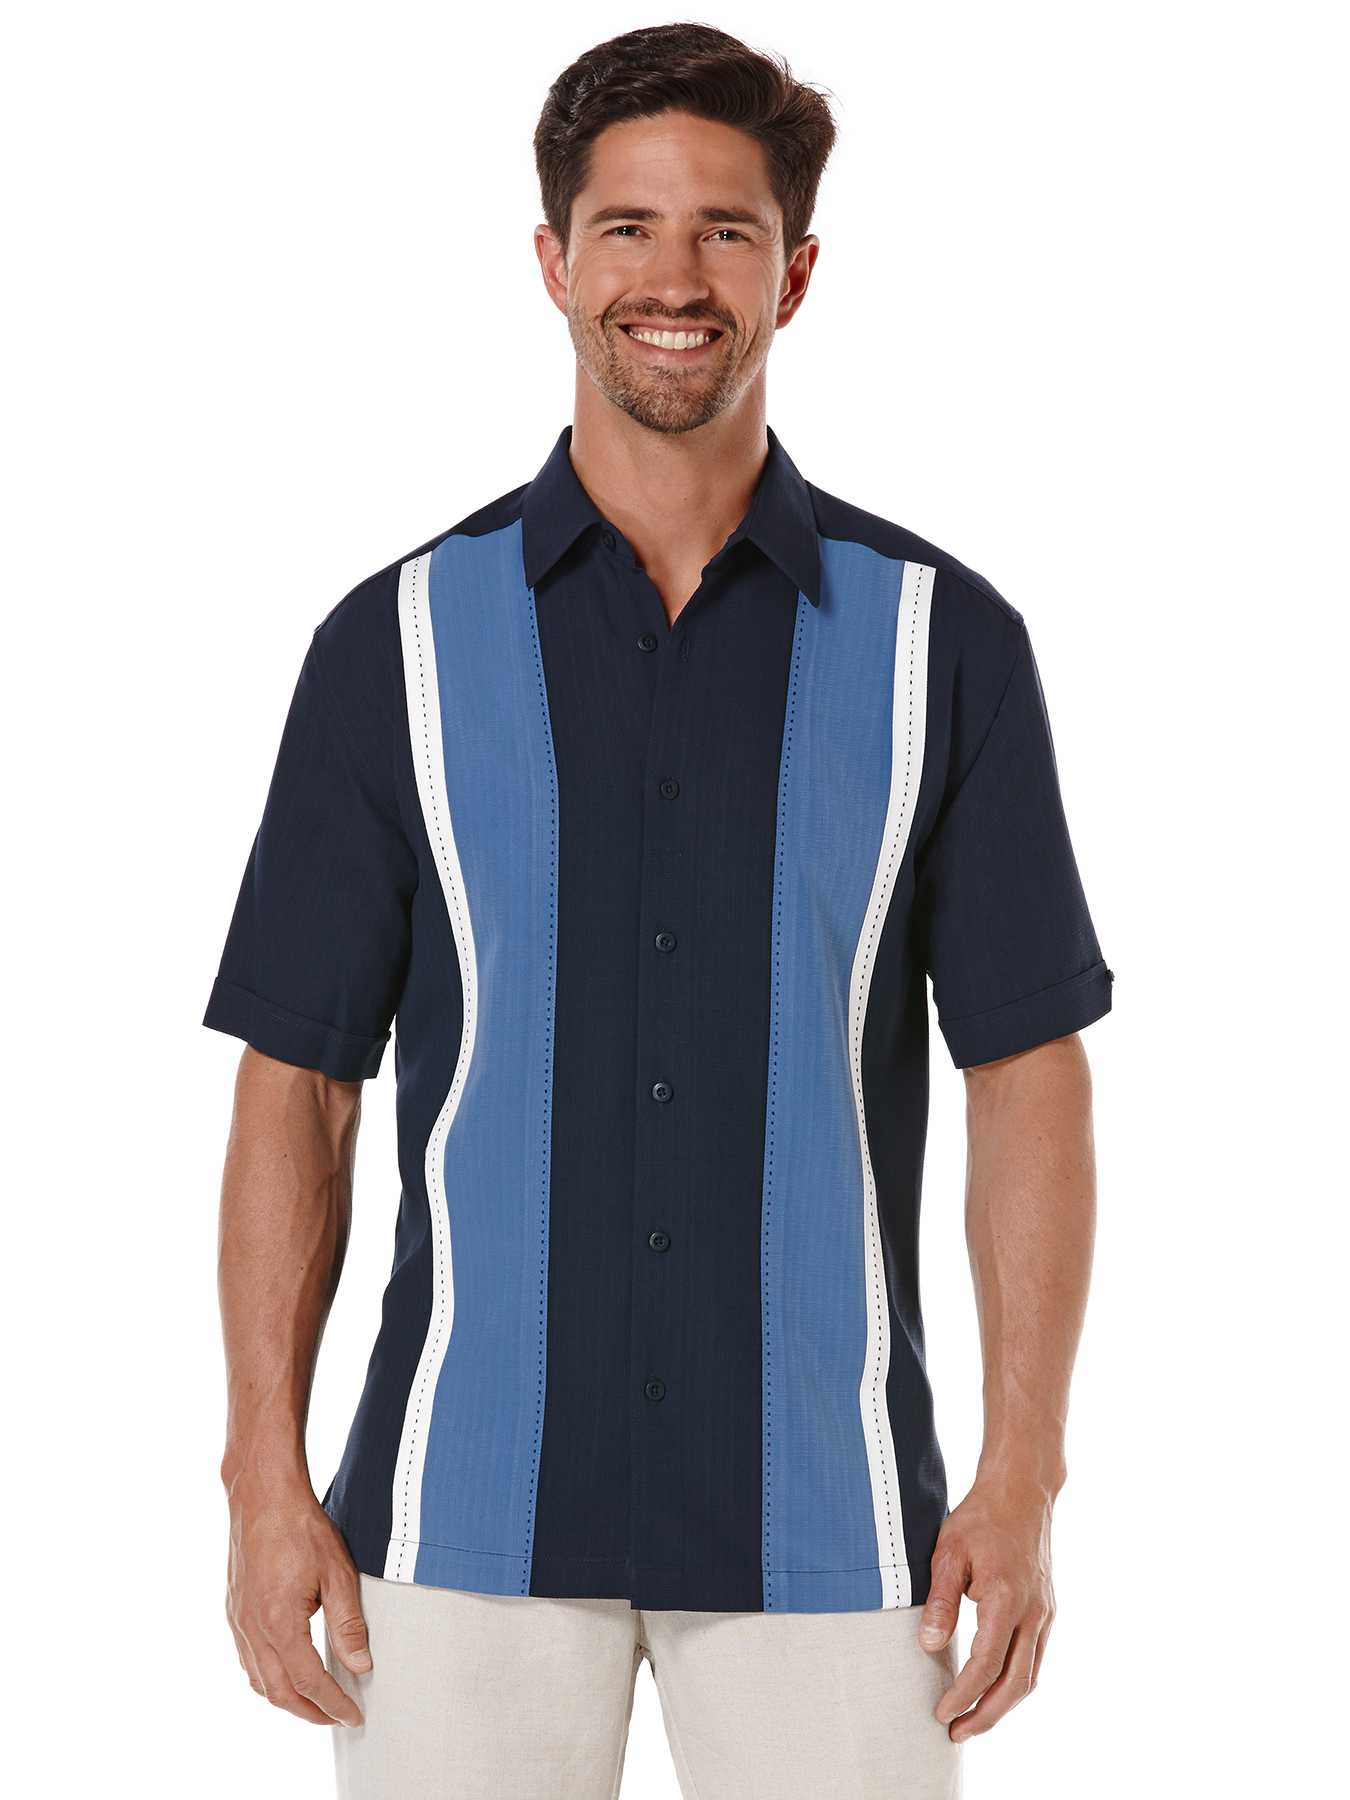 Cubavera Big & Tall Short Sleeve Texture Tri-Color Panel